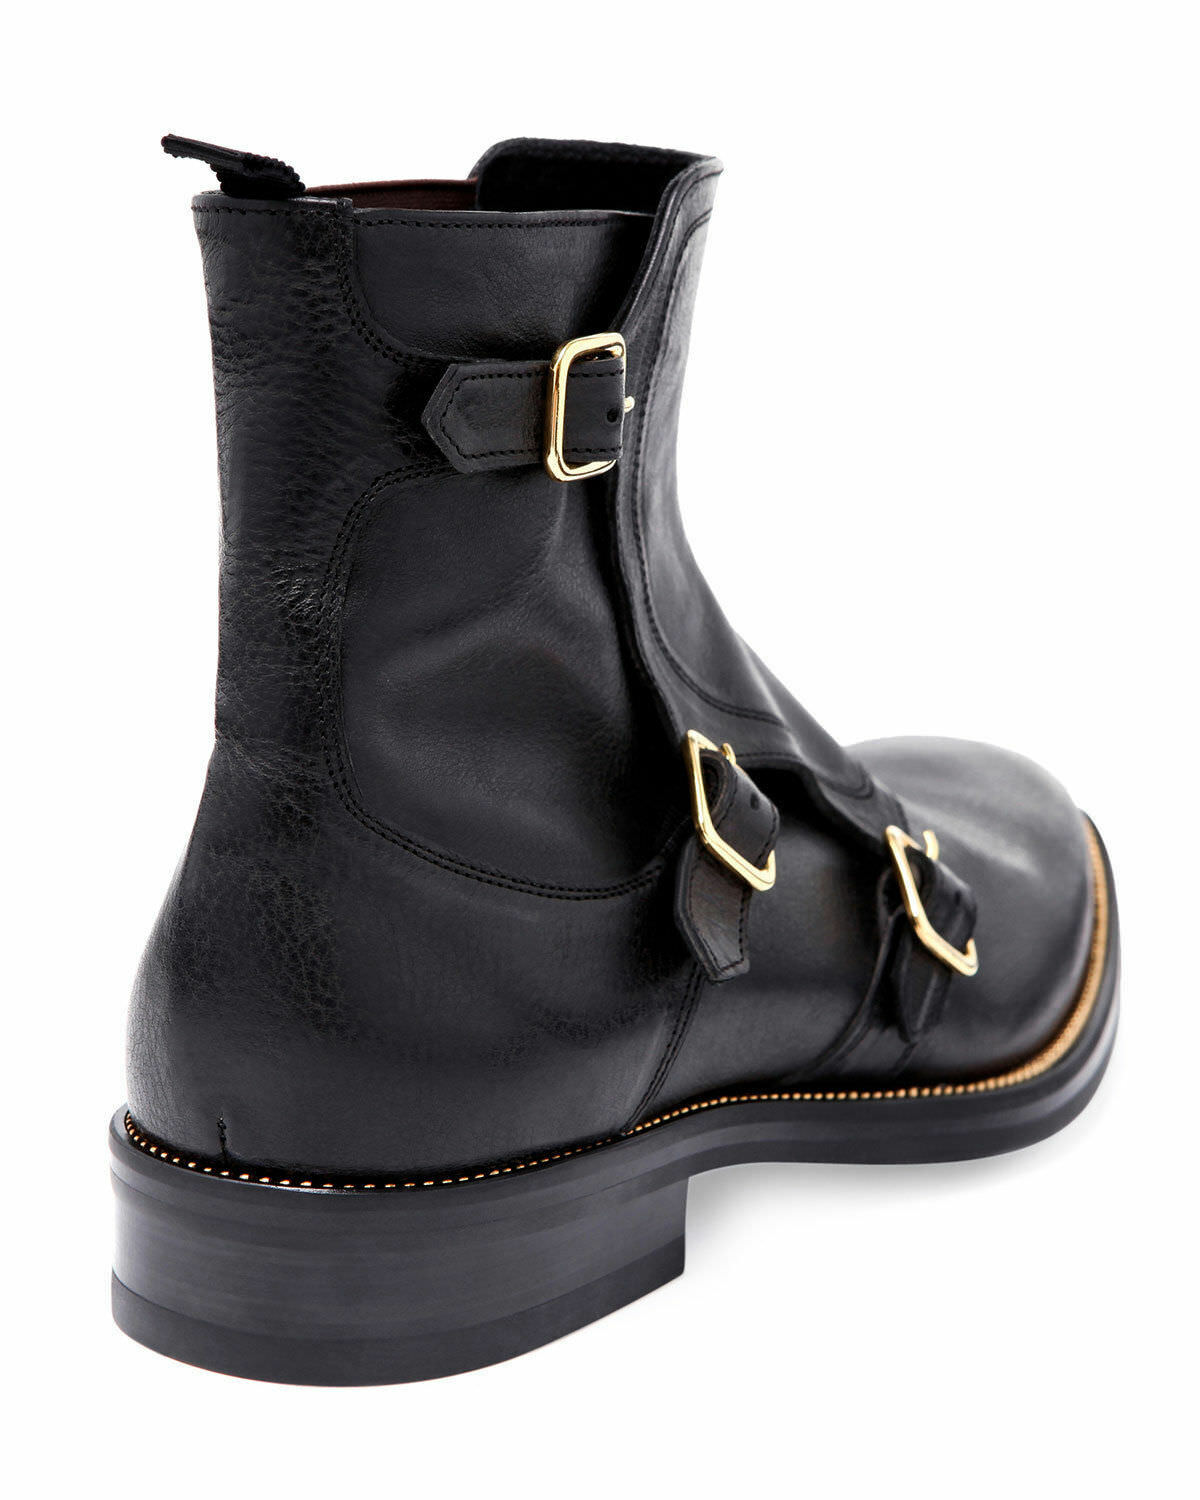 MEN HANDMADE BLACK TRIPLE MONK LEATHER BOOTS HIGH QUALITY PURE LEATHER MONK SHOES FOR MEN 10c981